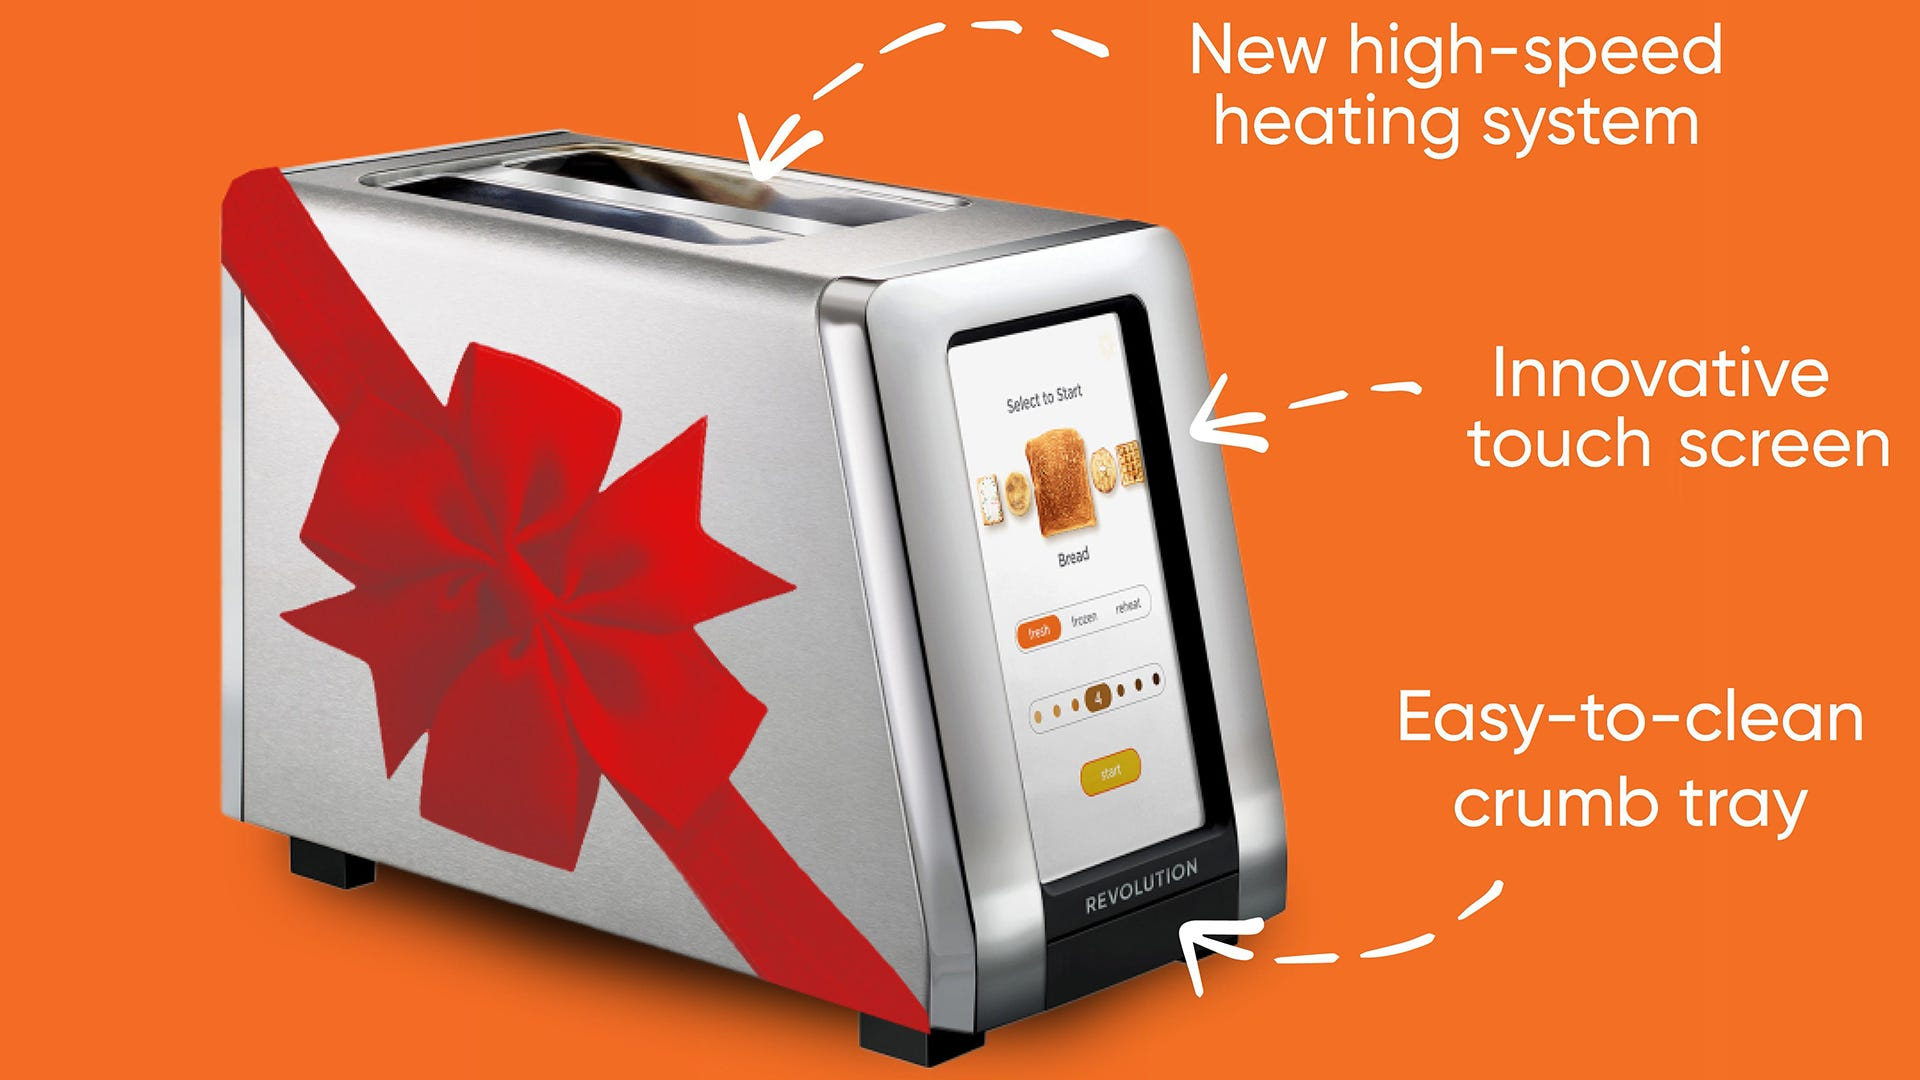 Revolution Cooking's smart toaster with some annotations